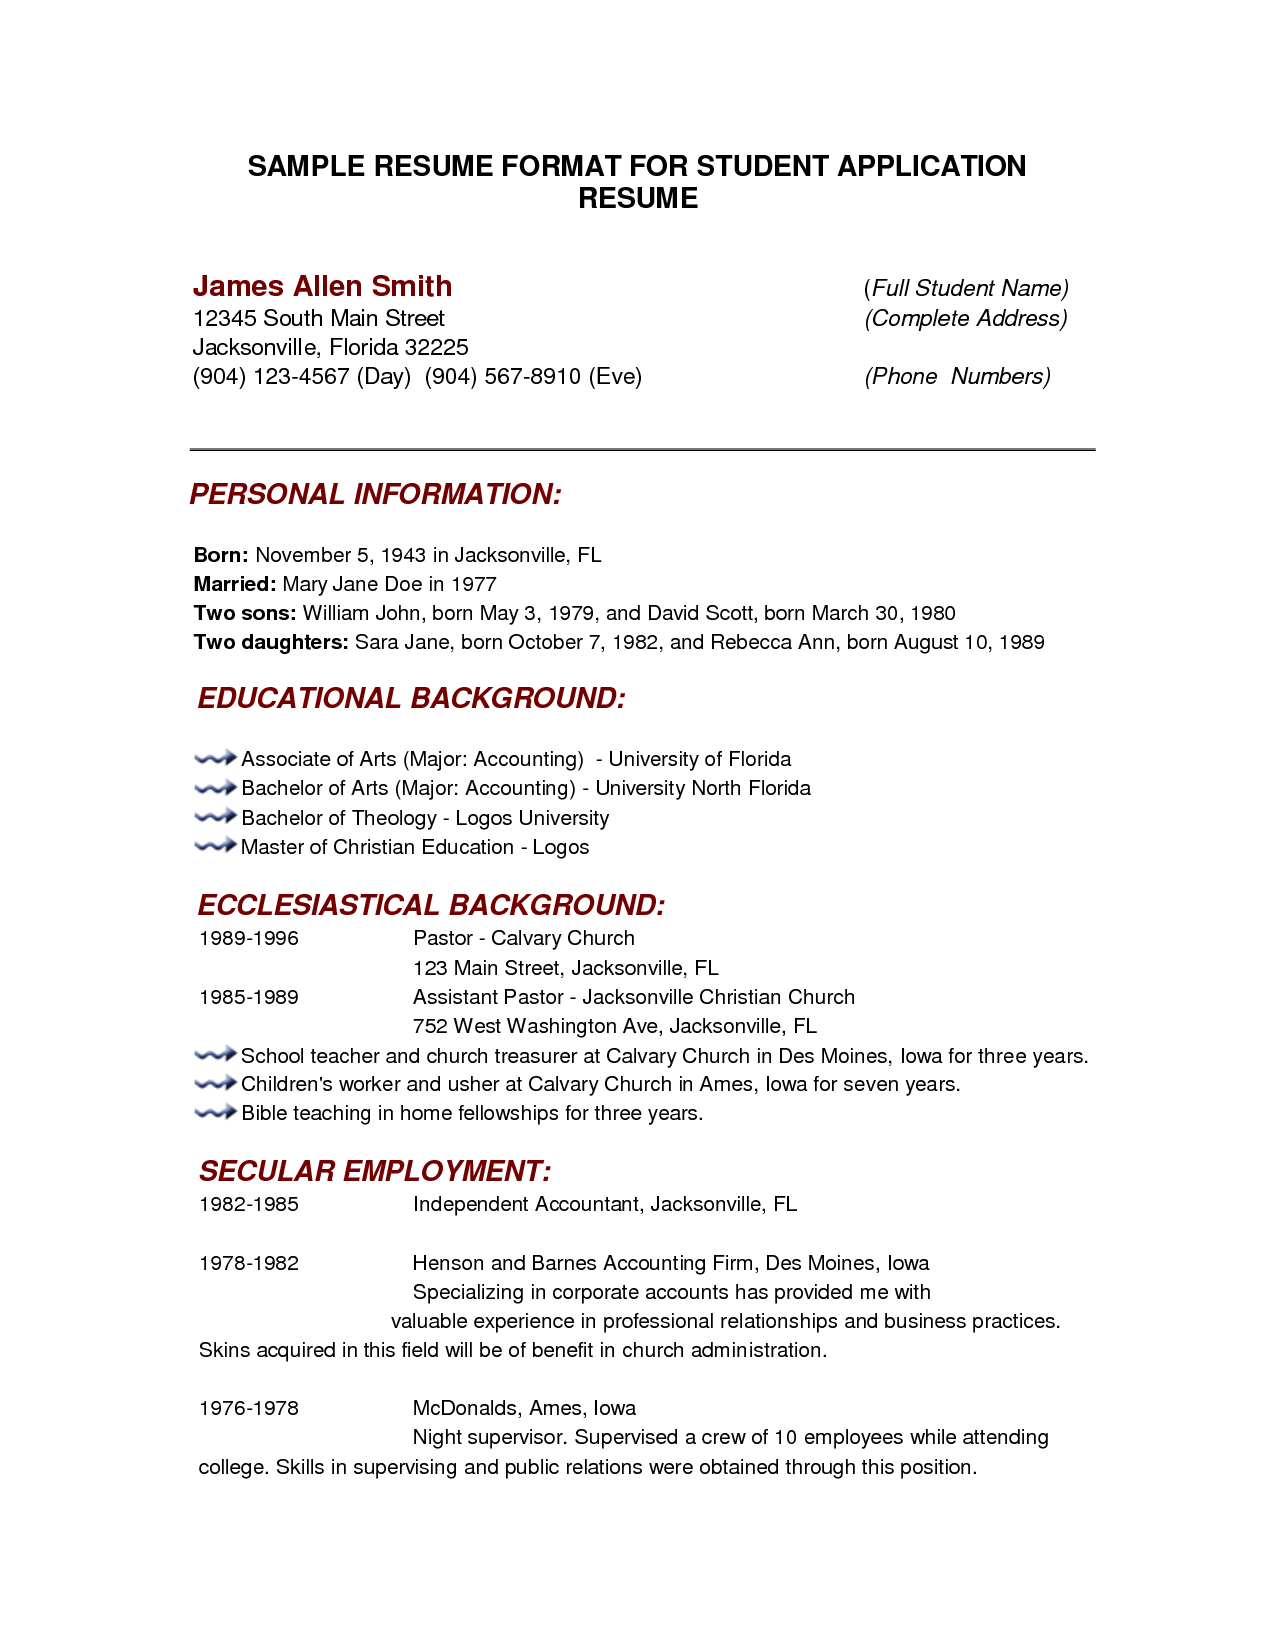 College Internship Resume Template Interesting Pinjobresume On Resume Career Termplate Free  Pinterest